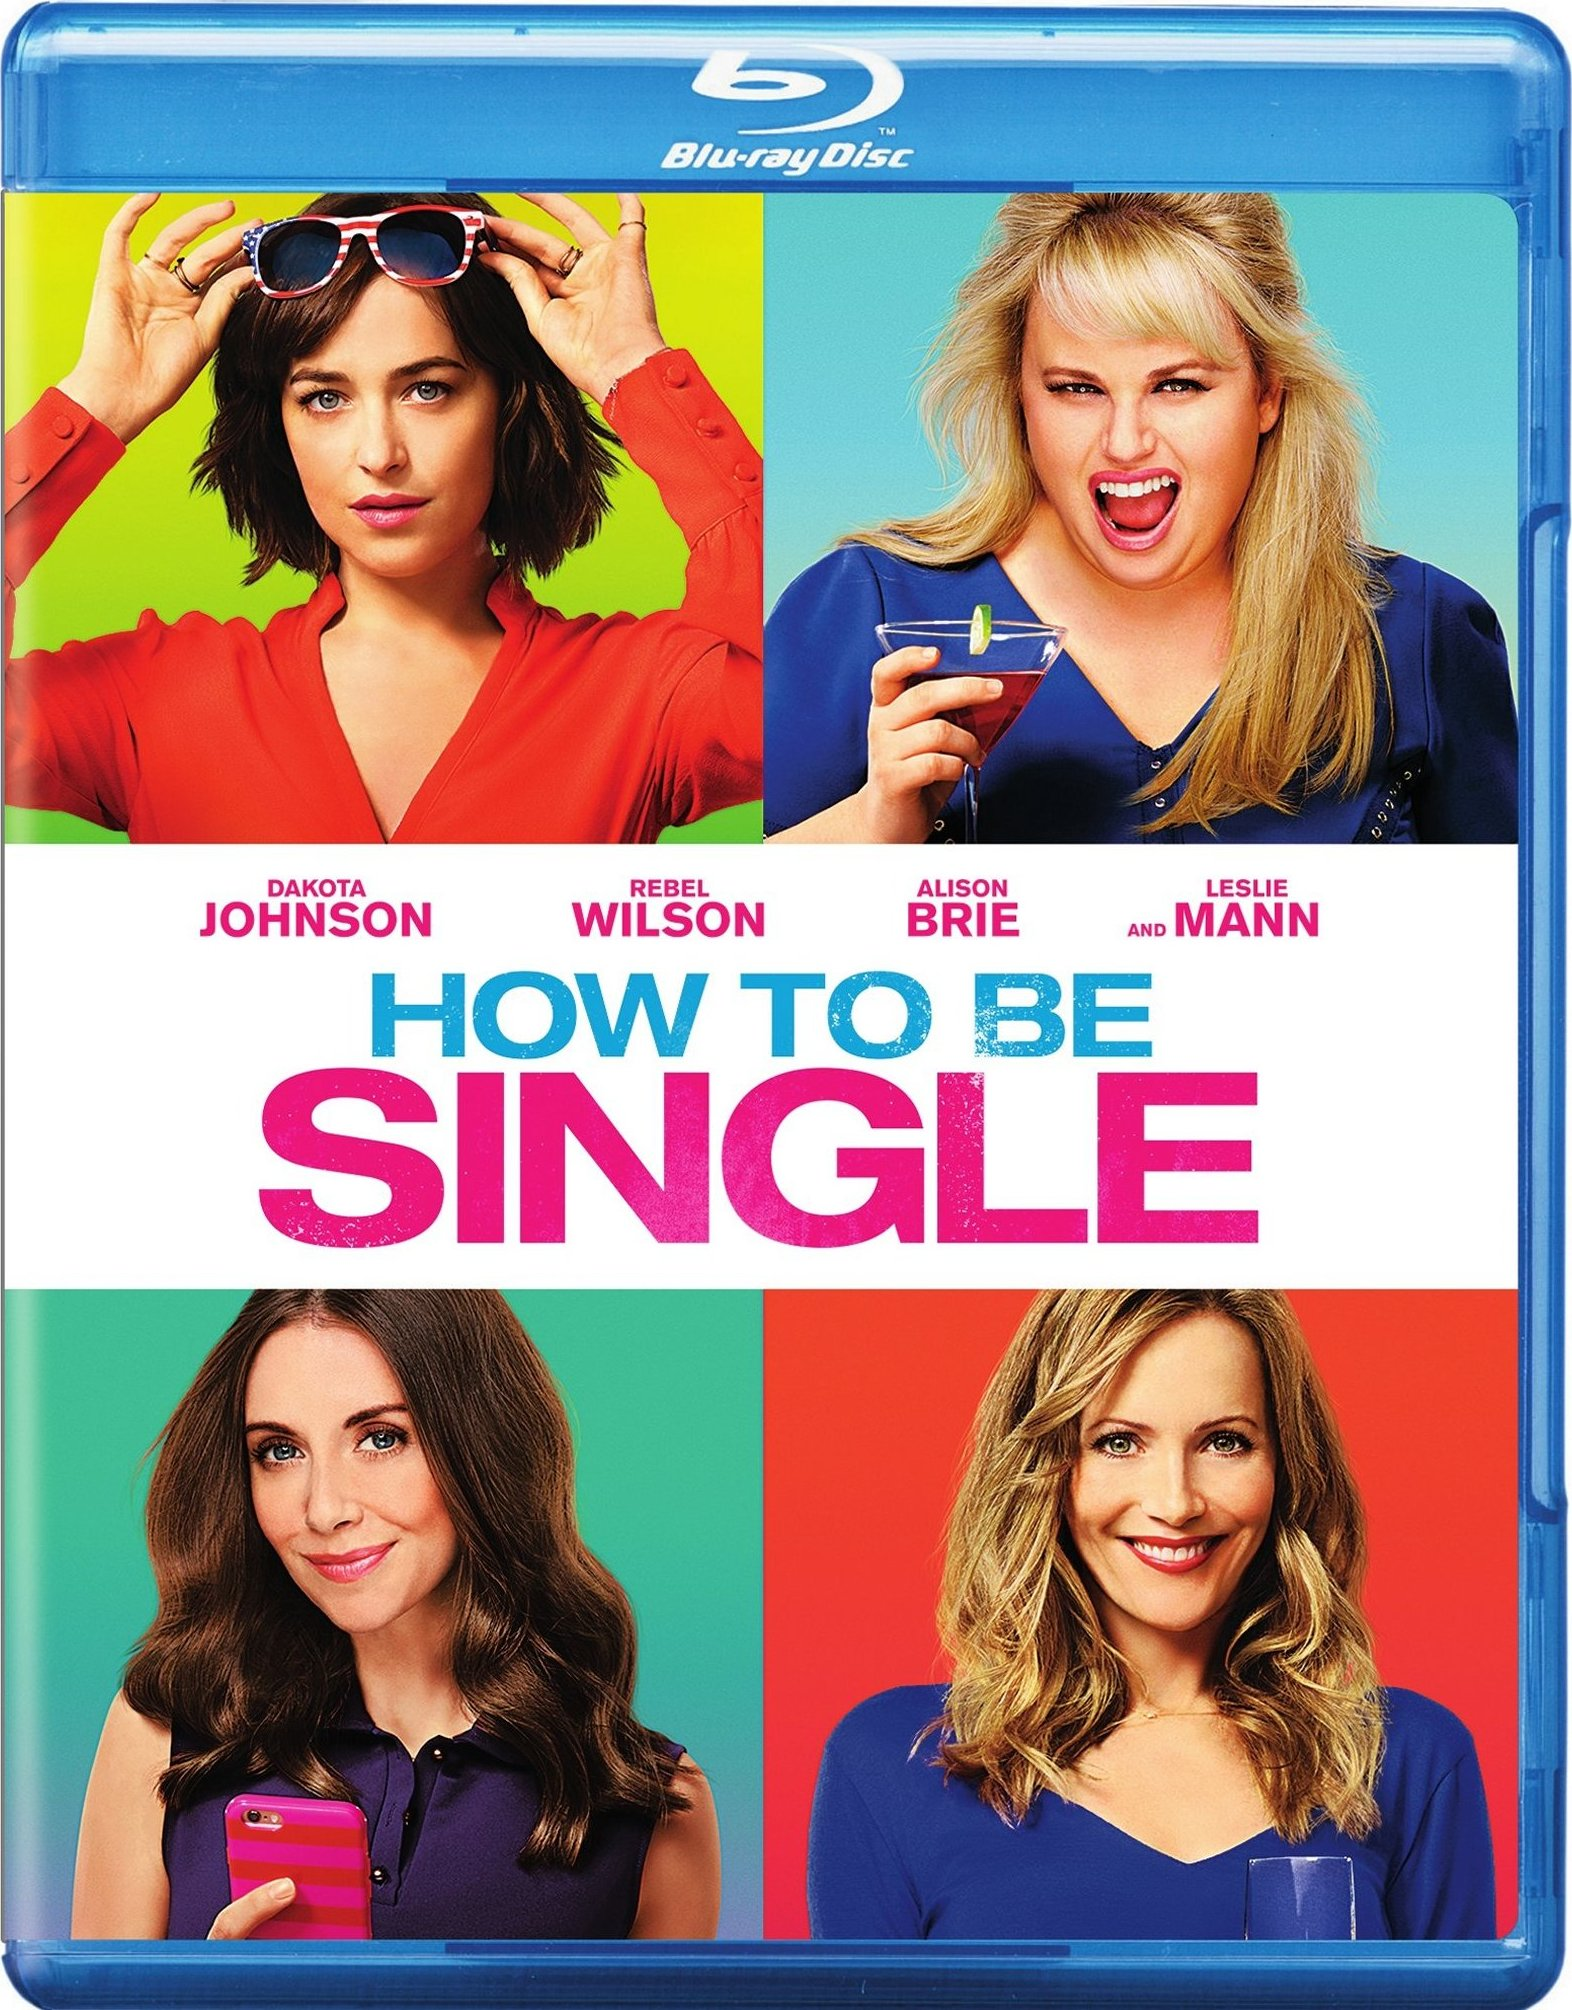 How to Be Single (2016) poster image